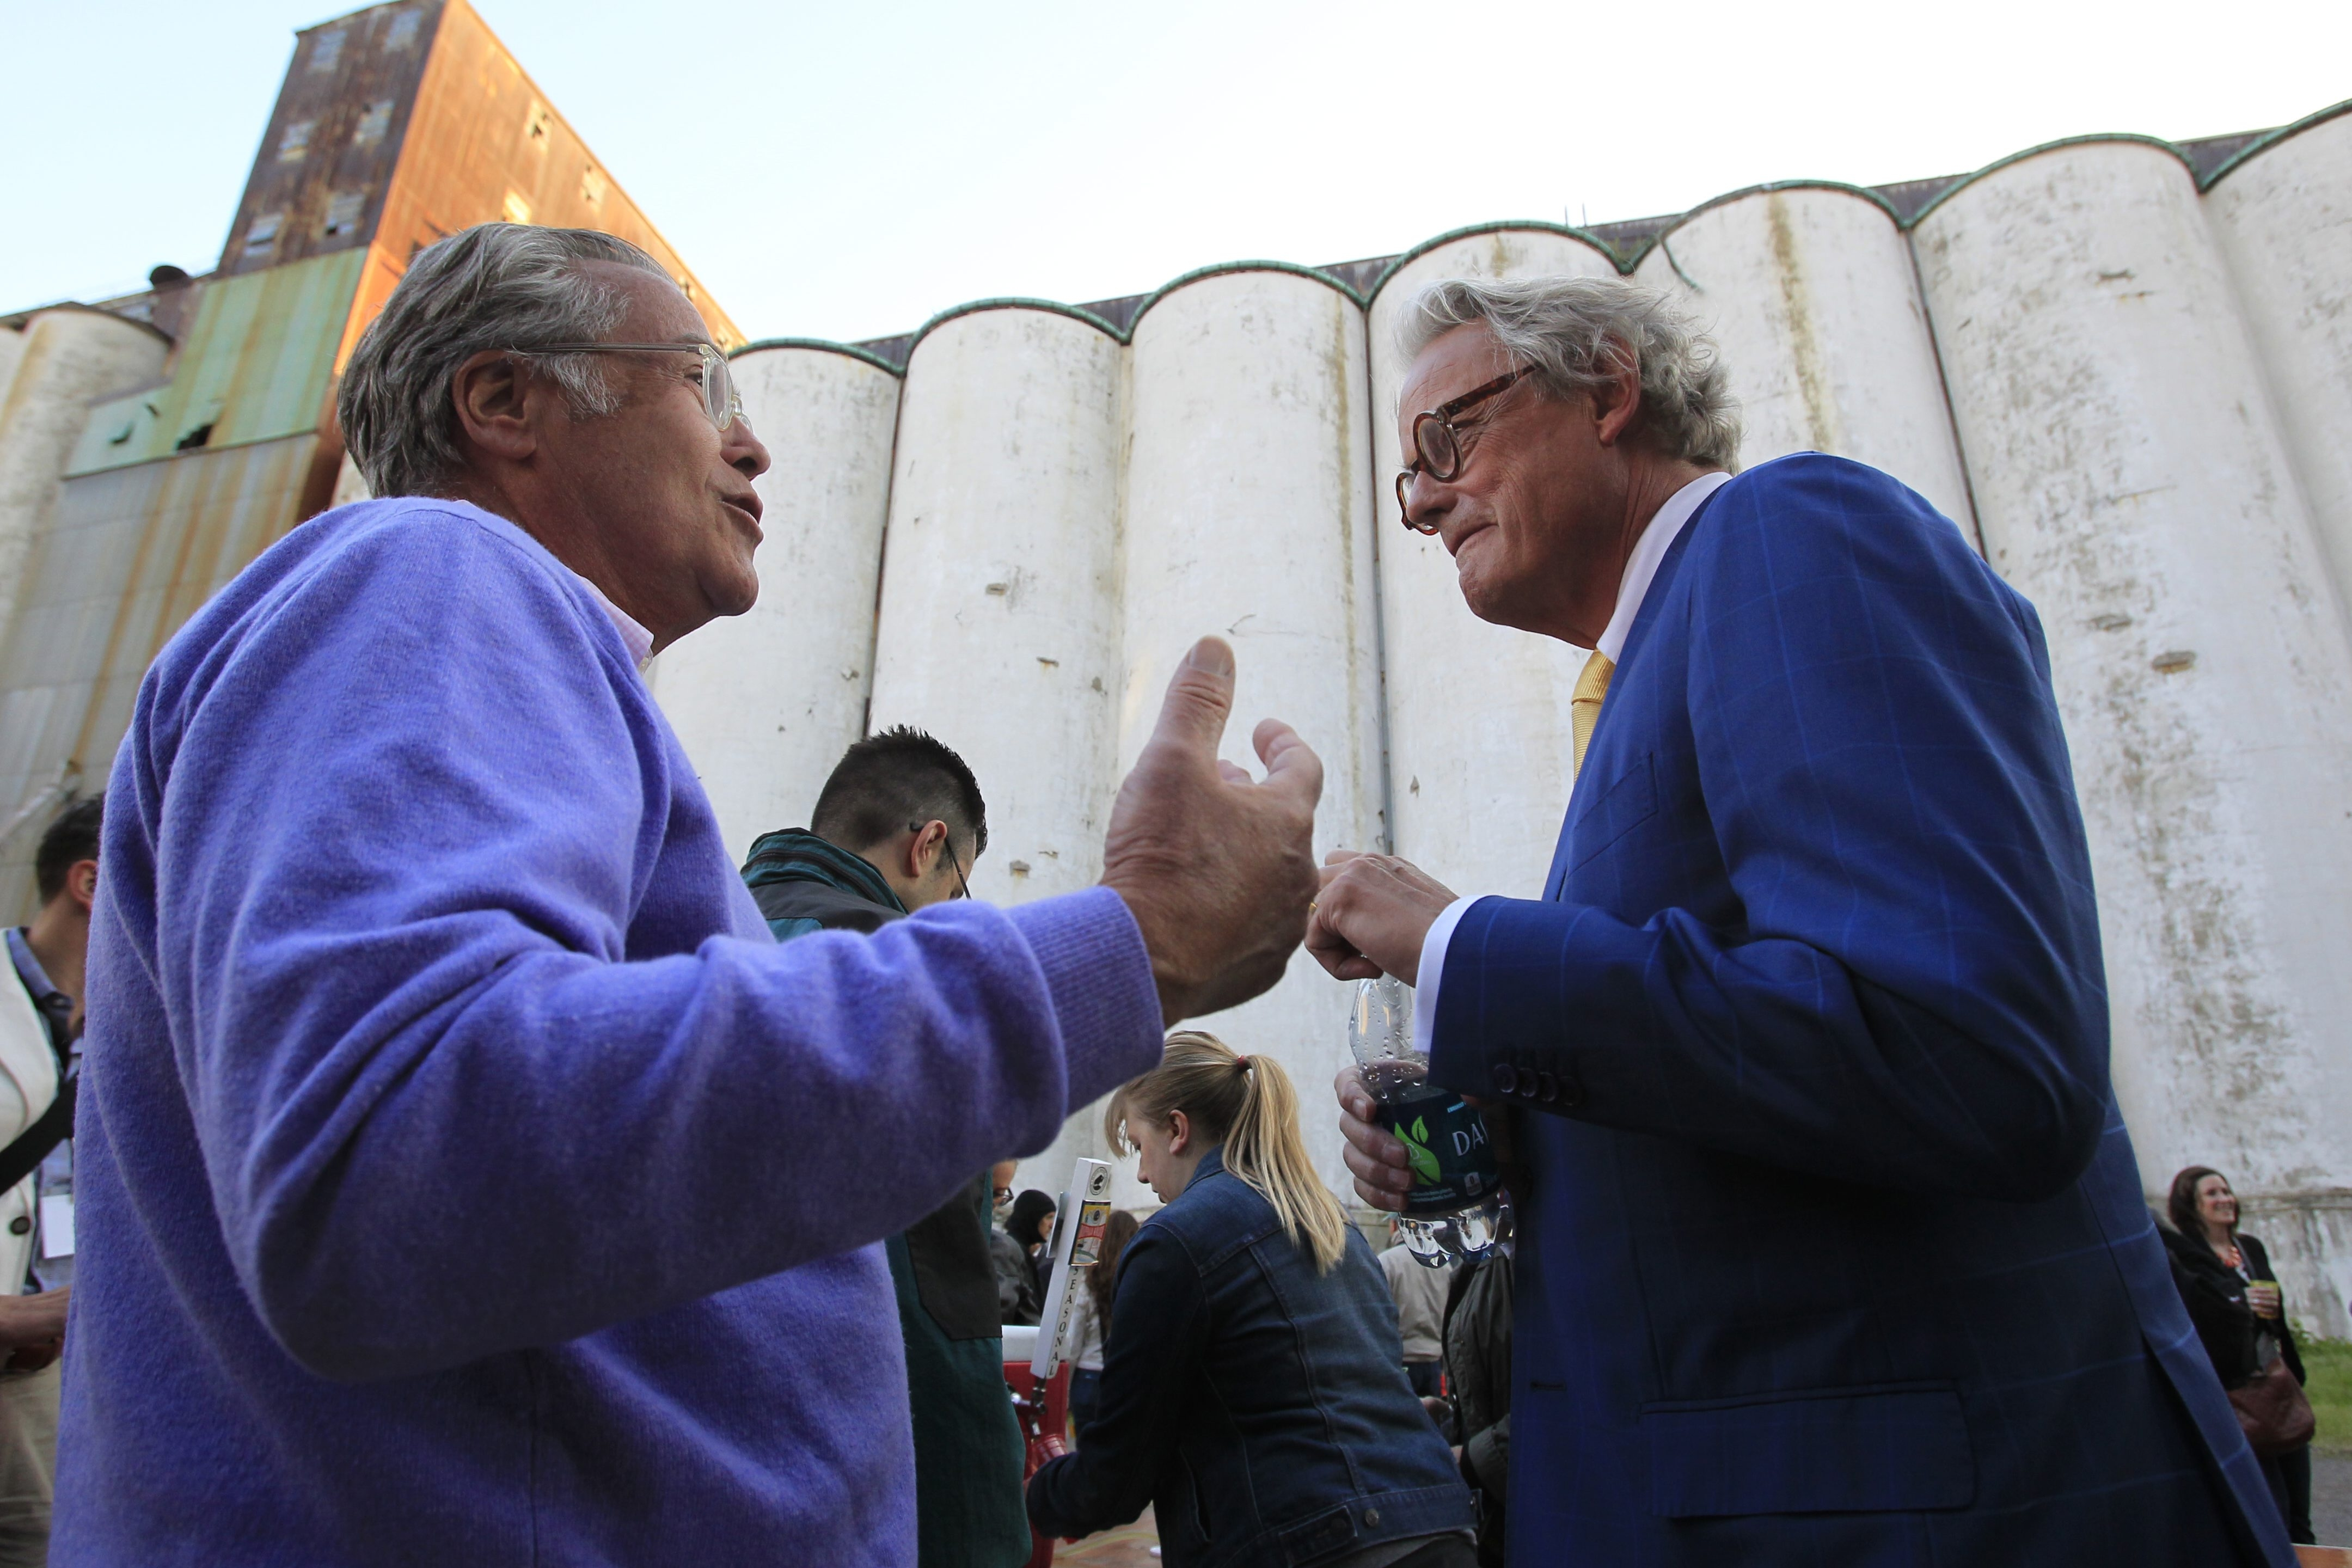 Developer Rocco Termini, left, talks with Sjoerd Soeters during an event hosted by Campaign for Greater Buffalo History, Art and Culture at Silo City on Thursday.